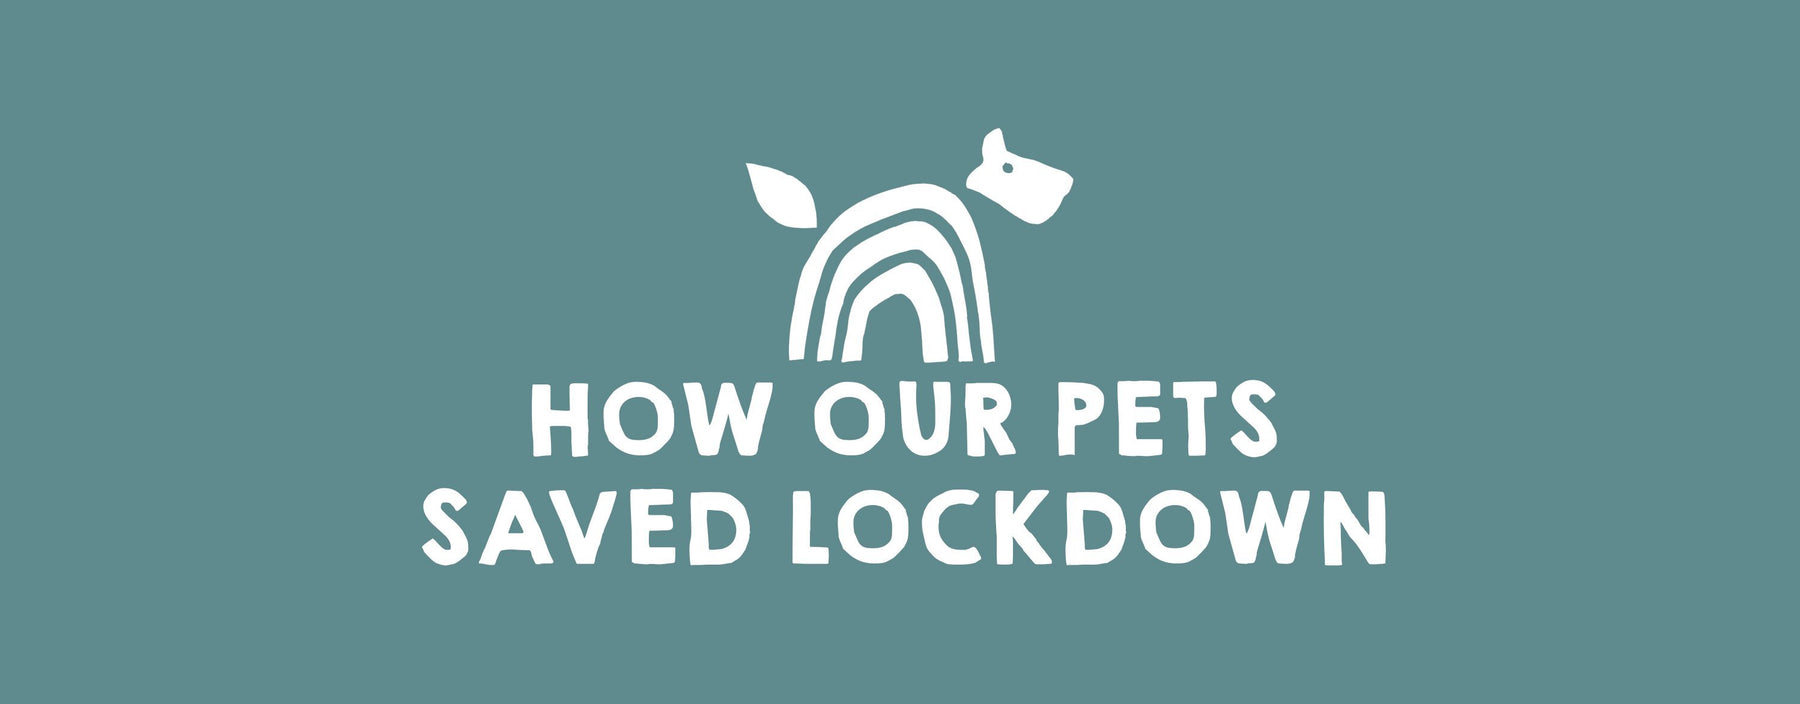 How Our Pets Saved Lockdown